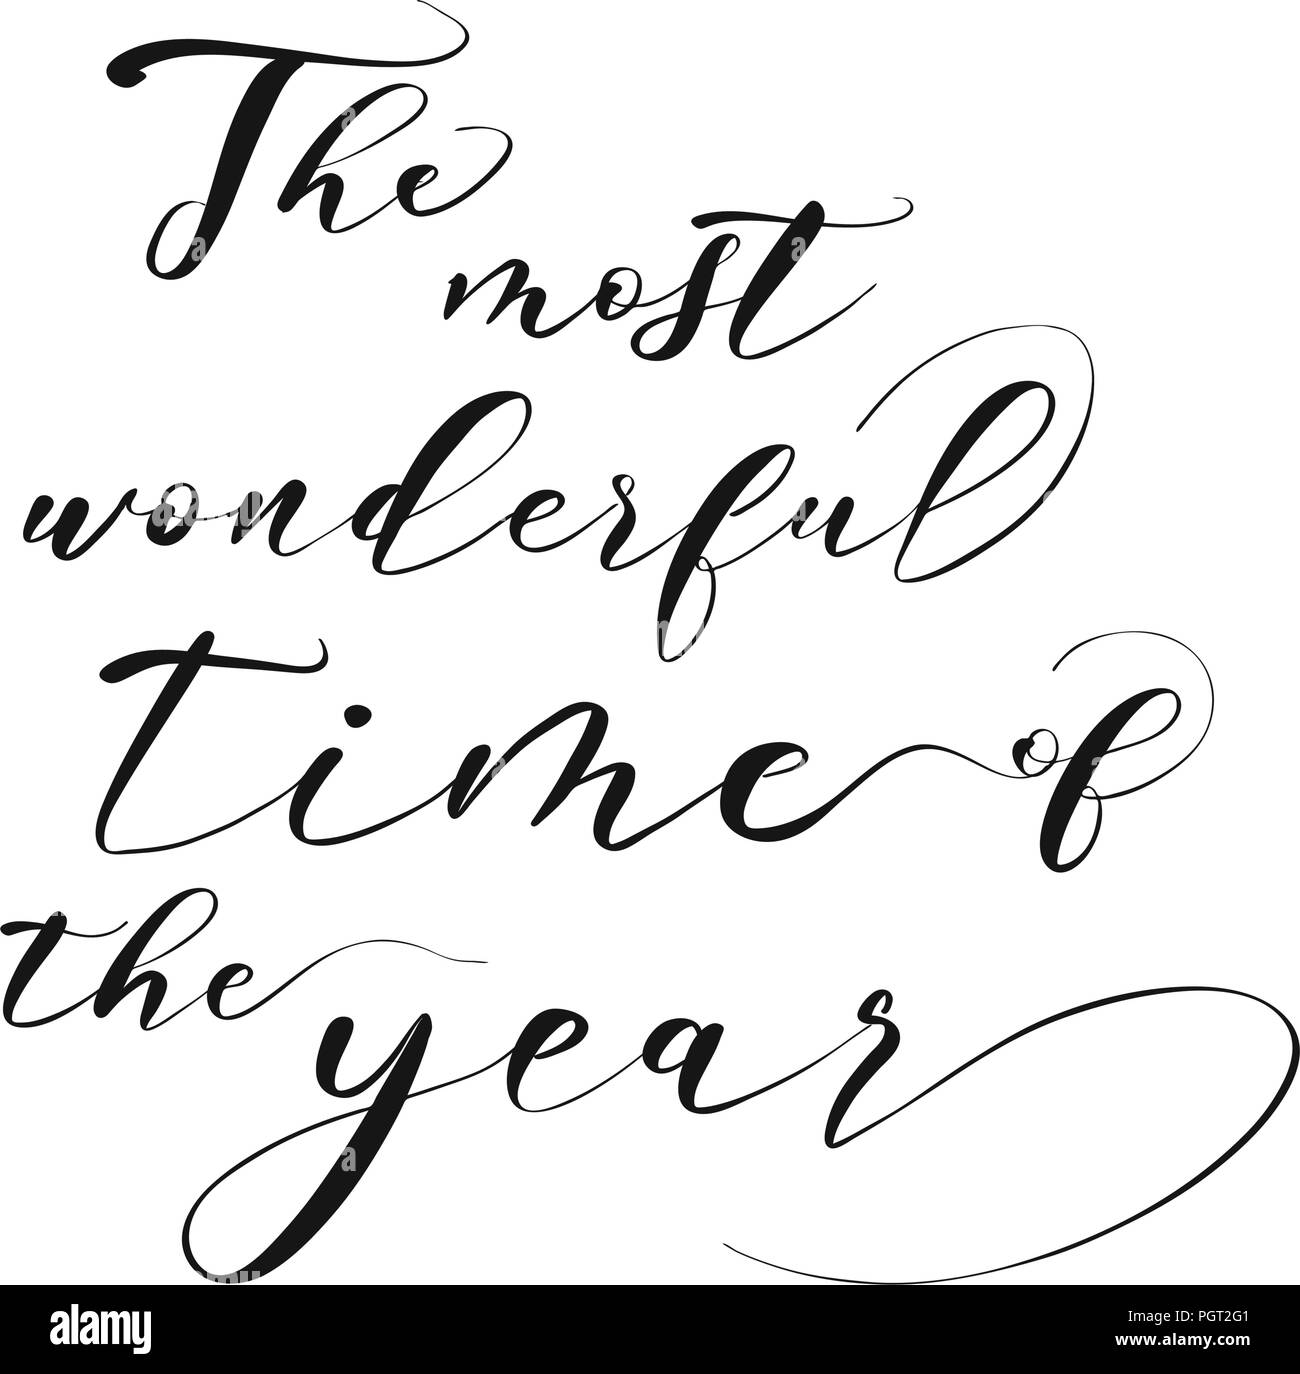 The most wonderful time of the year lettering. Nice seasonal calligraphic artwork for greeting cards. Hand-drawn vector sketch. - Stock Image